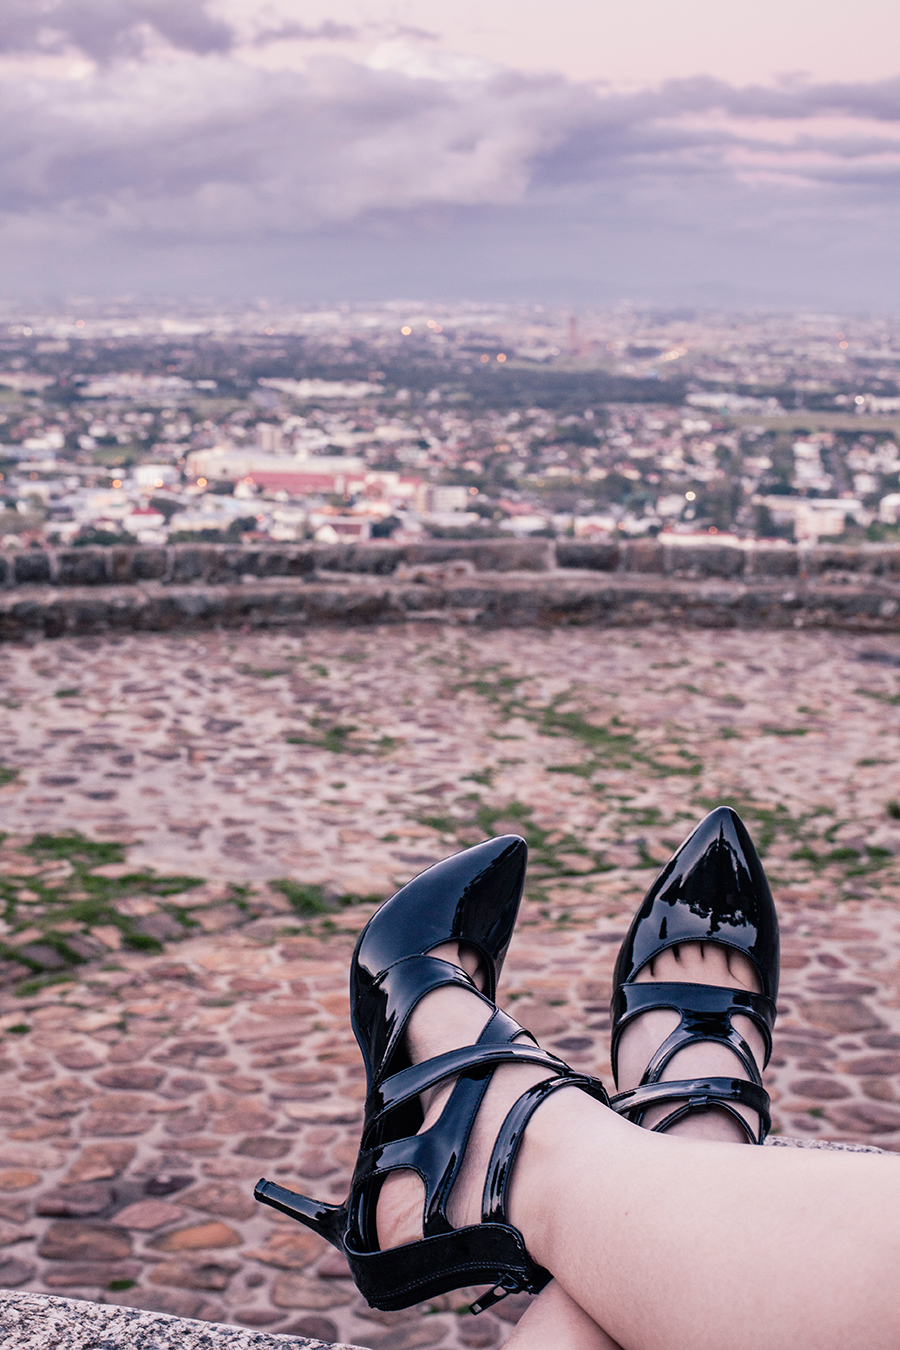 From where I sit featuring Sidewalk strappy heels overlooking Cape Town.